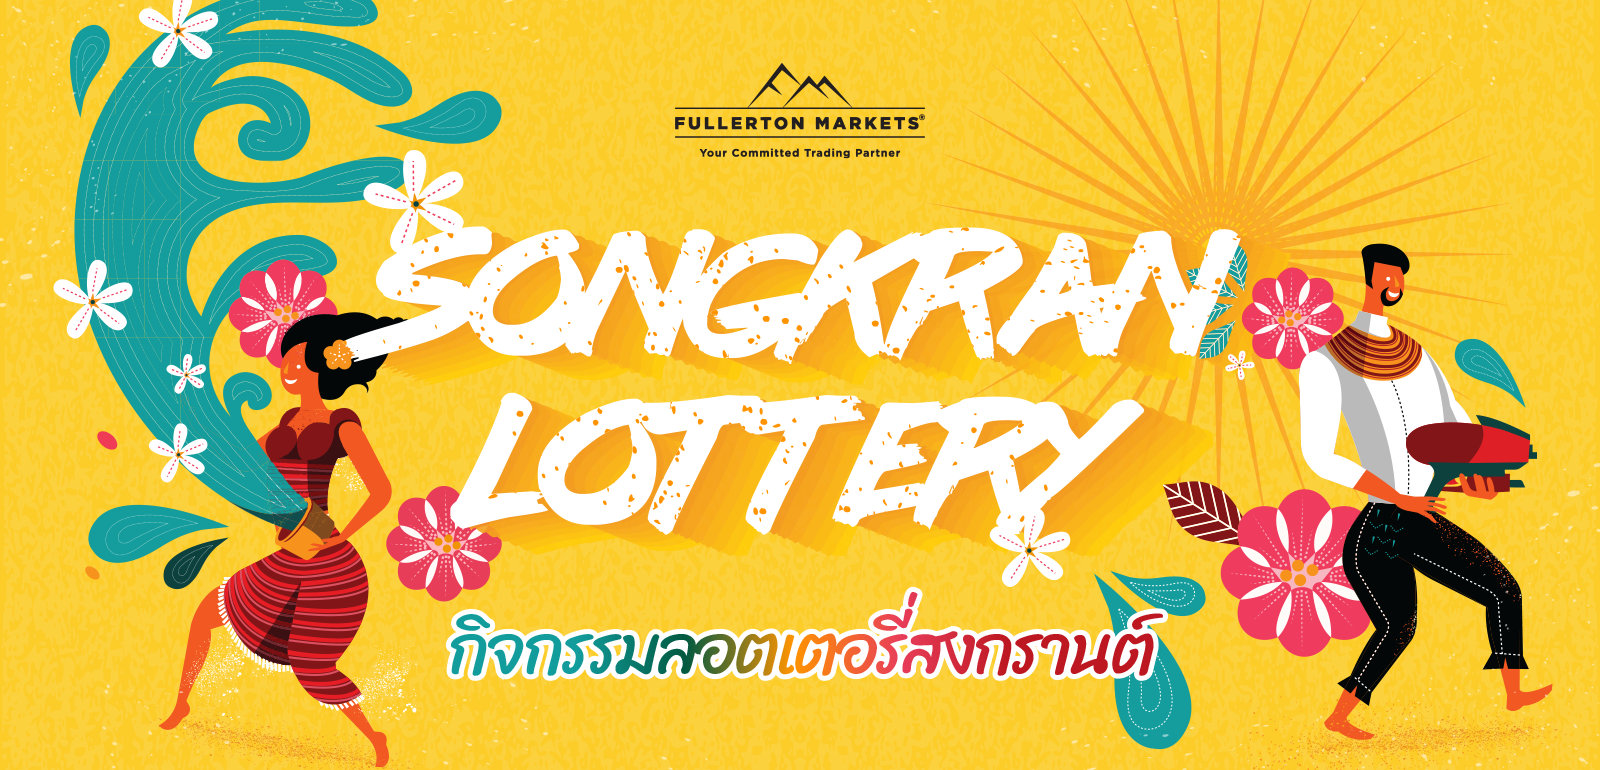 Songkran-Lottery-Banners_1600x770px